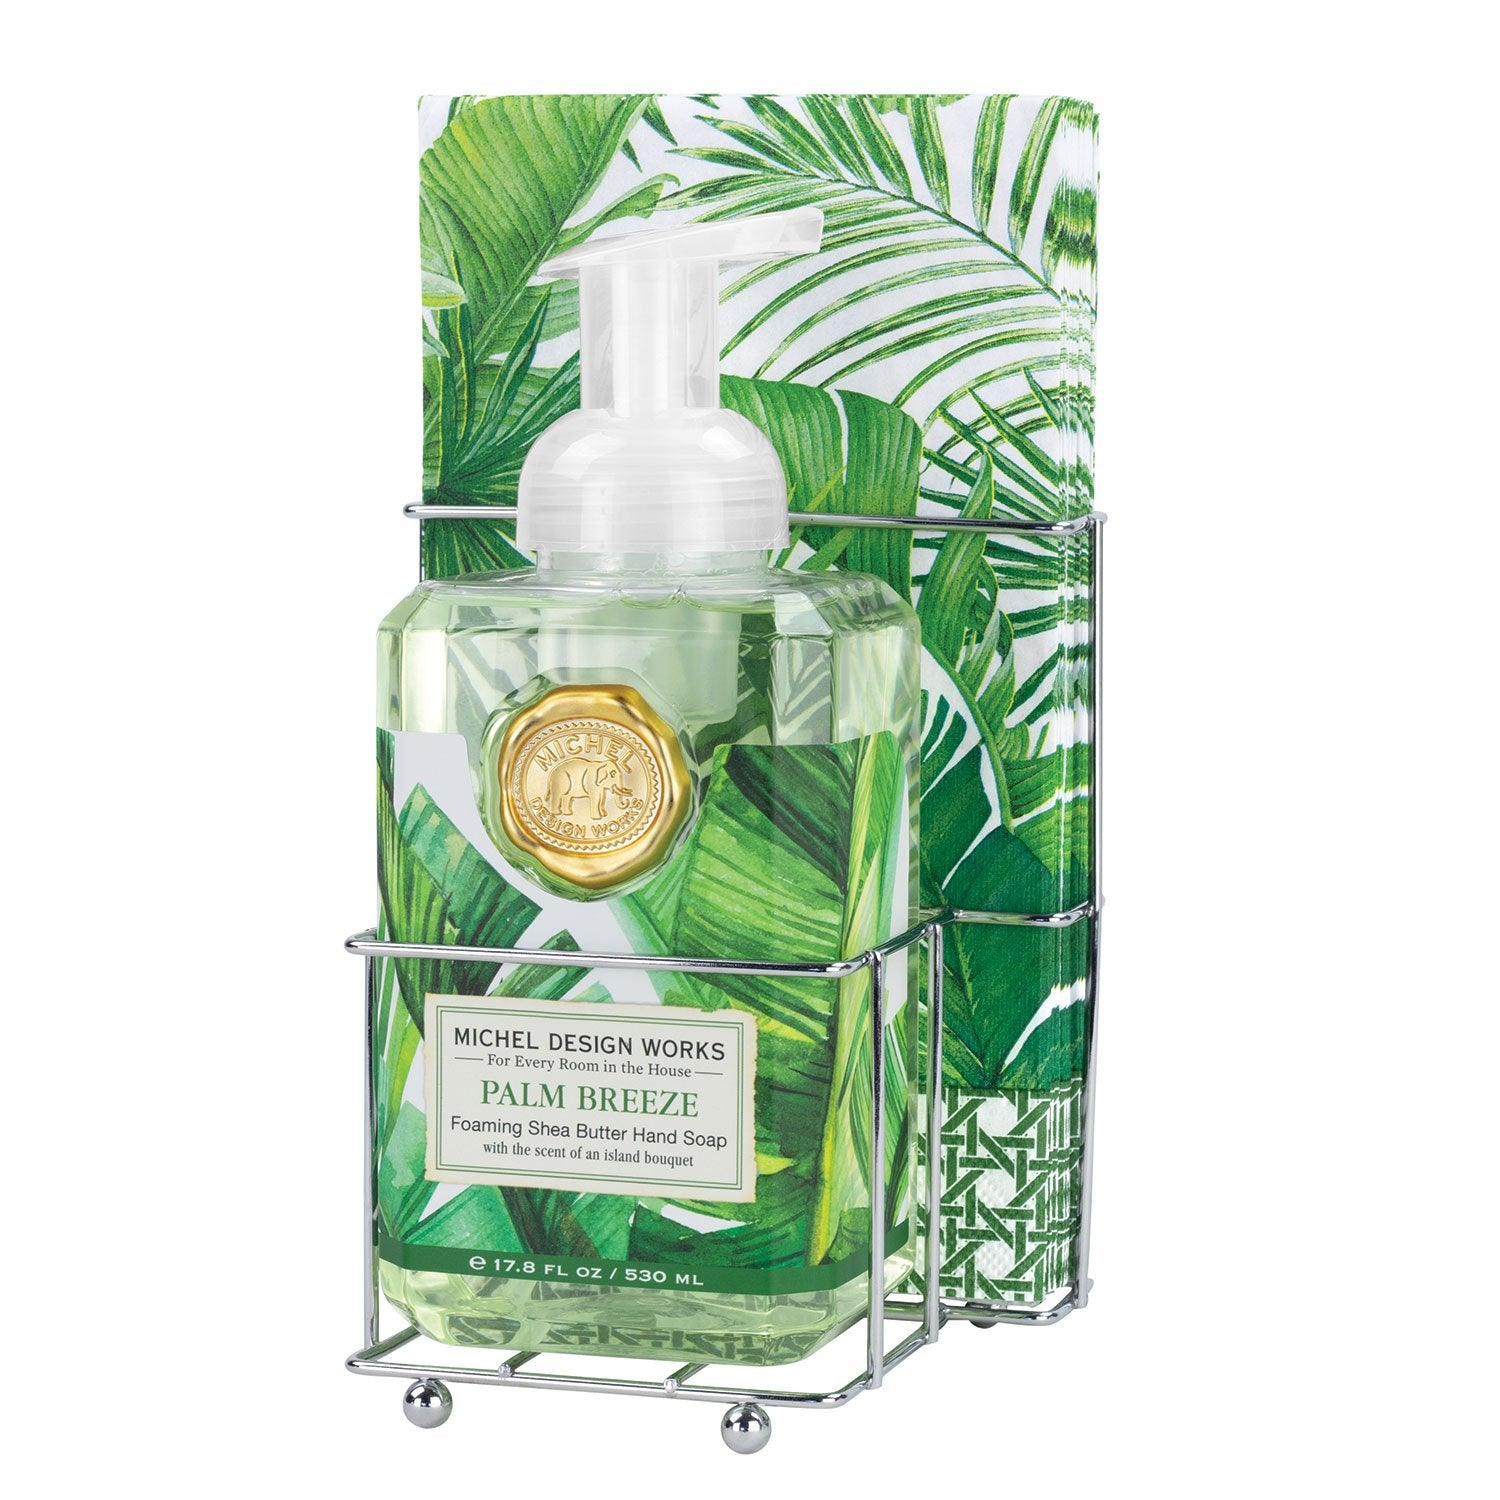 Palm Breeze Foaming Hand Soap Napkin Set